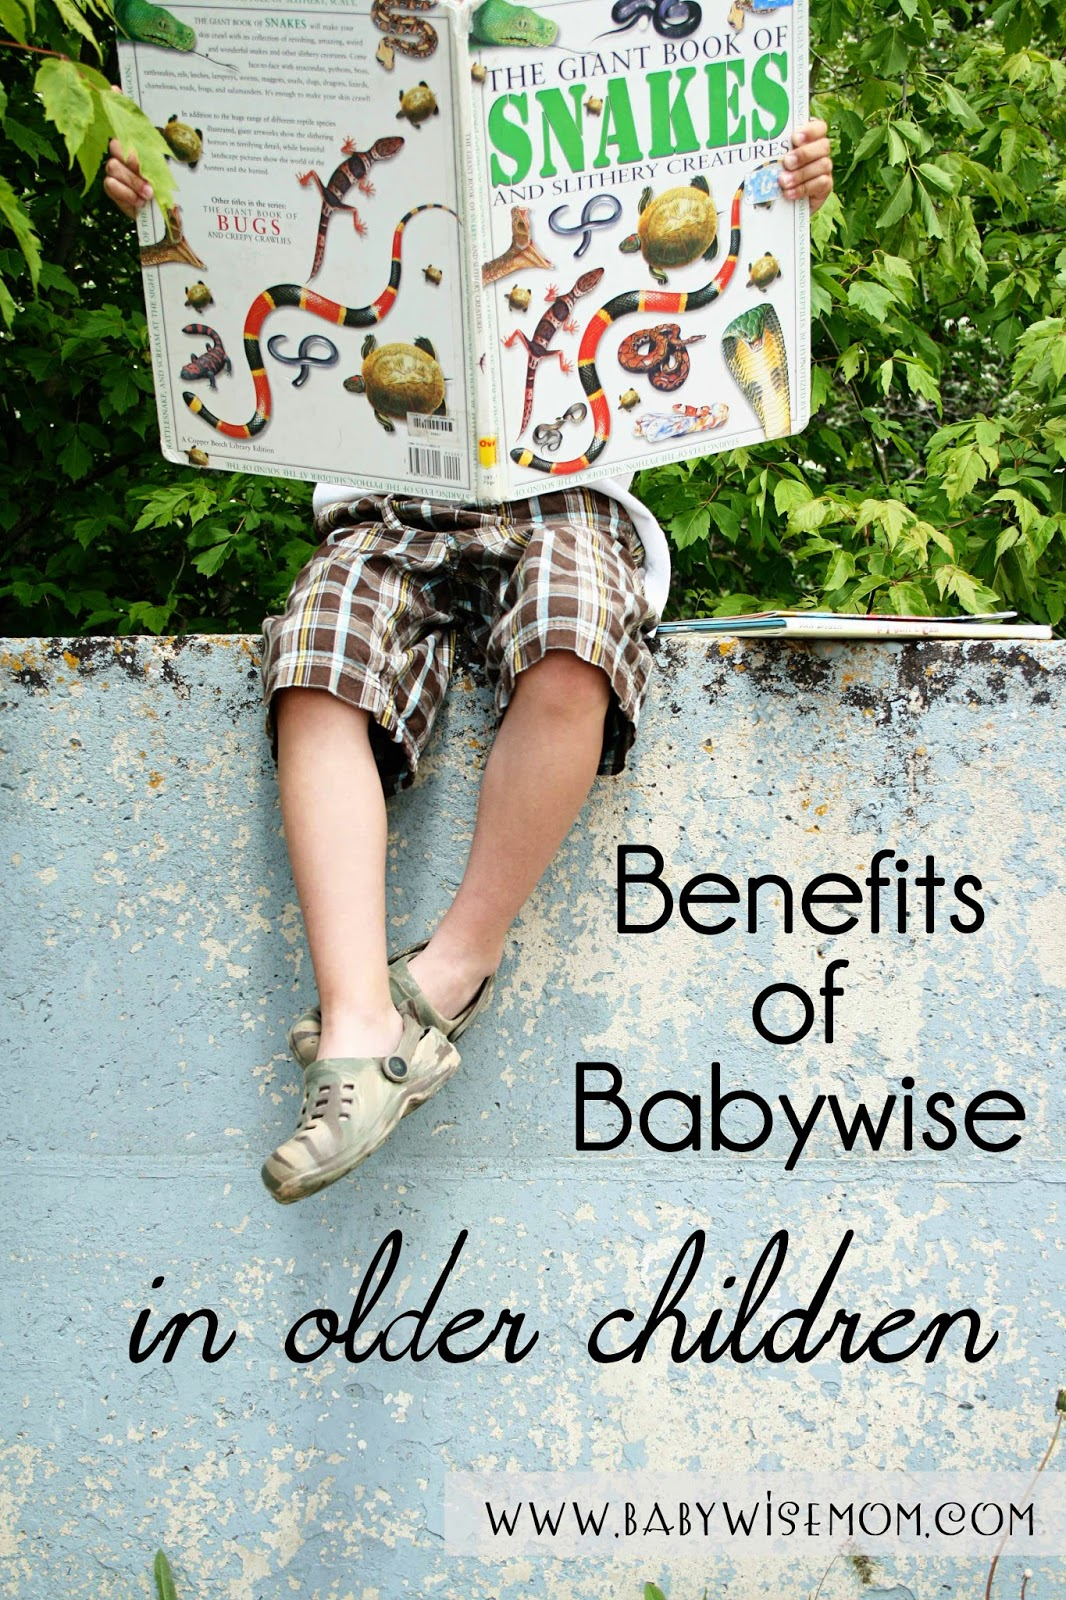 Benefits of Babywise in older children